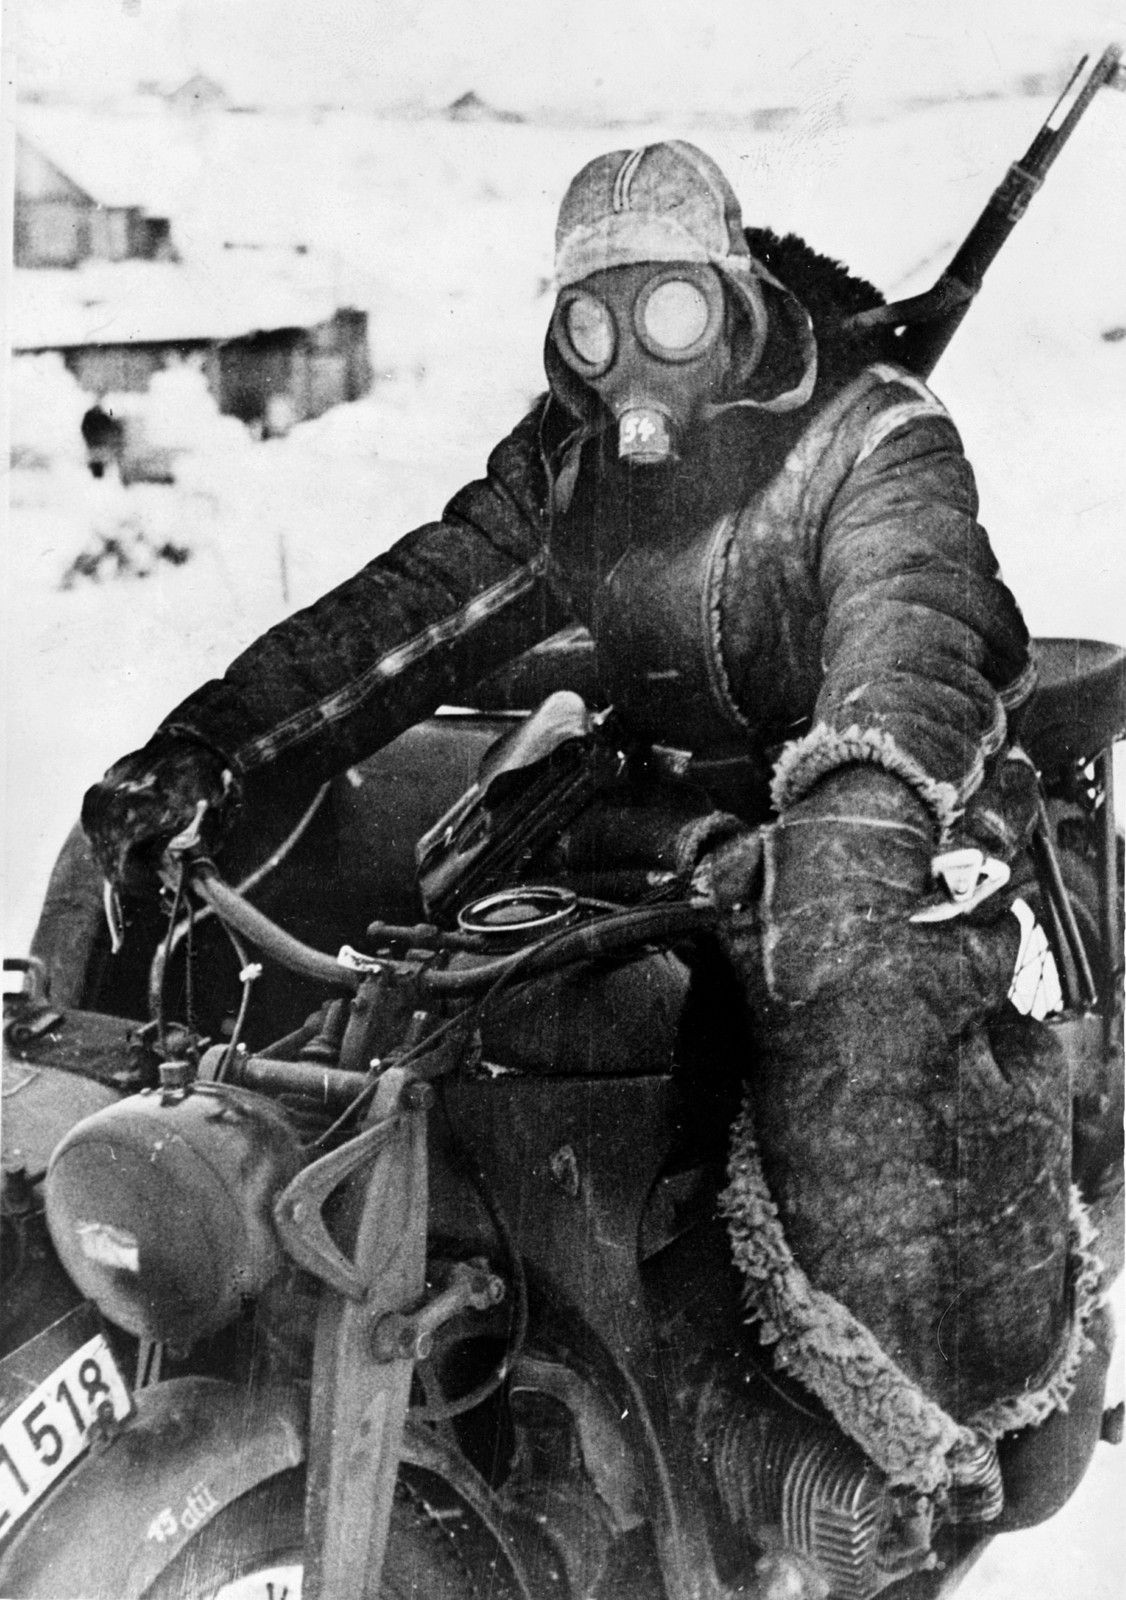 eastern front february 1942 riding a motorcycle in minus 40 celsius calls for some innovative. Black Bedroom Furniture Sets. Home Design Ideas